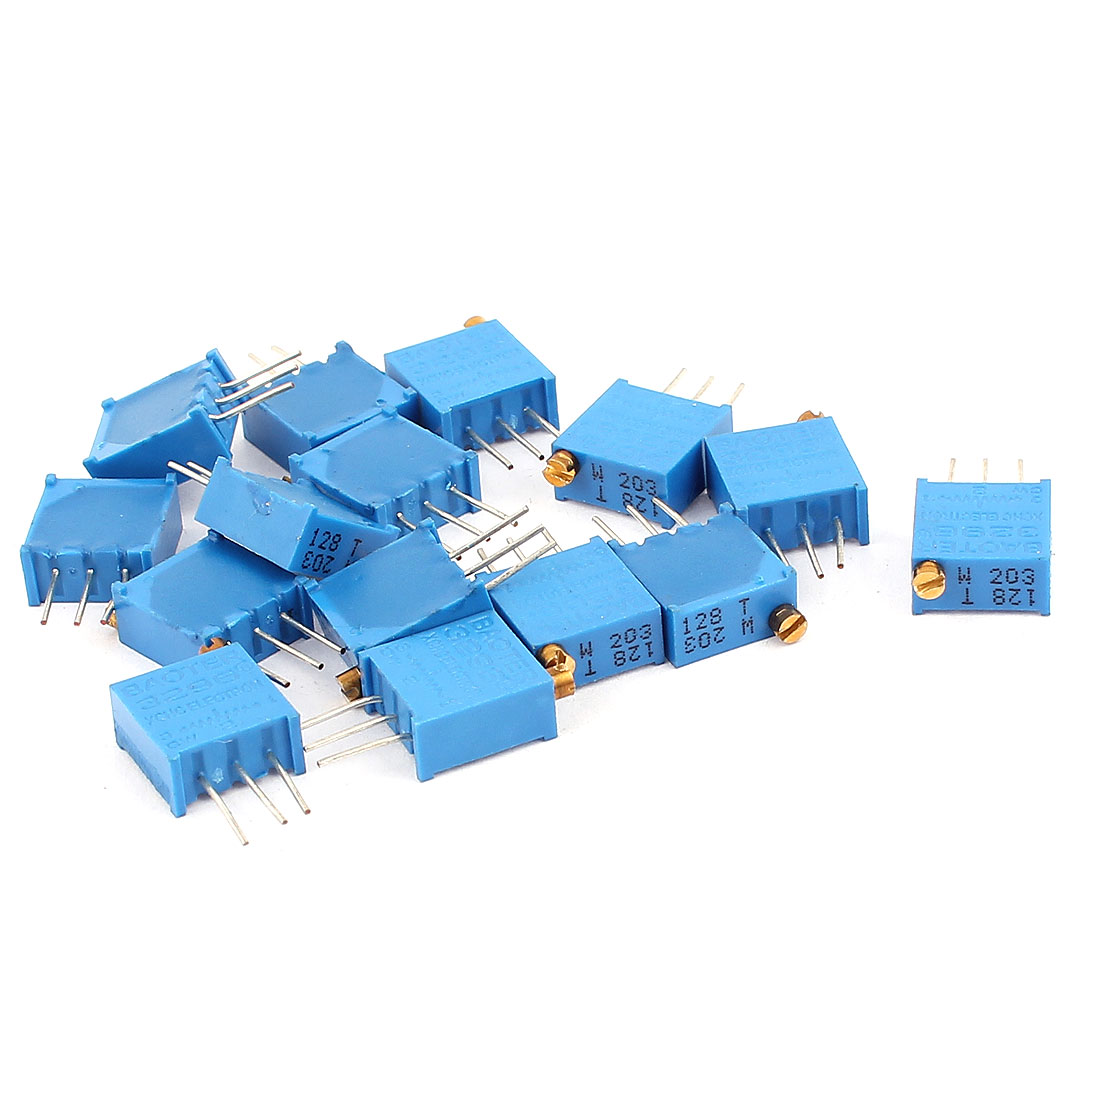 15 Pcs 3296W 20K ohm Multiturn Potentiometer Pot Variable Resistor